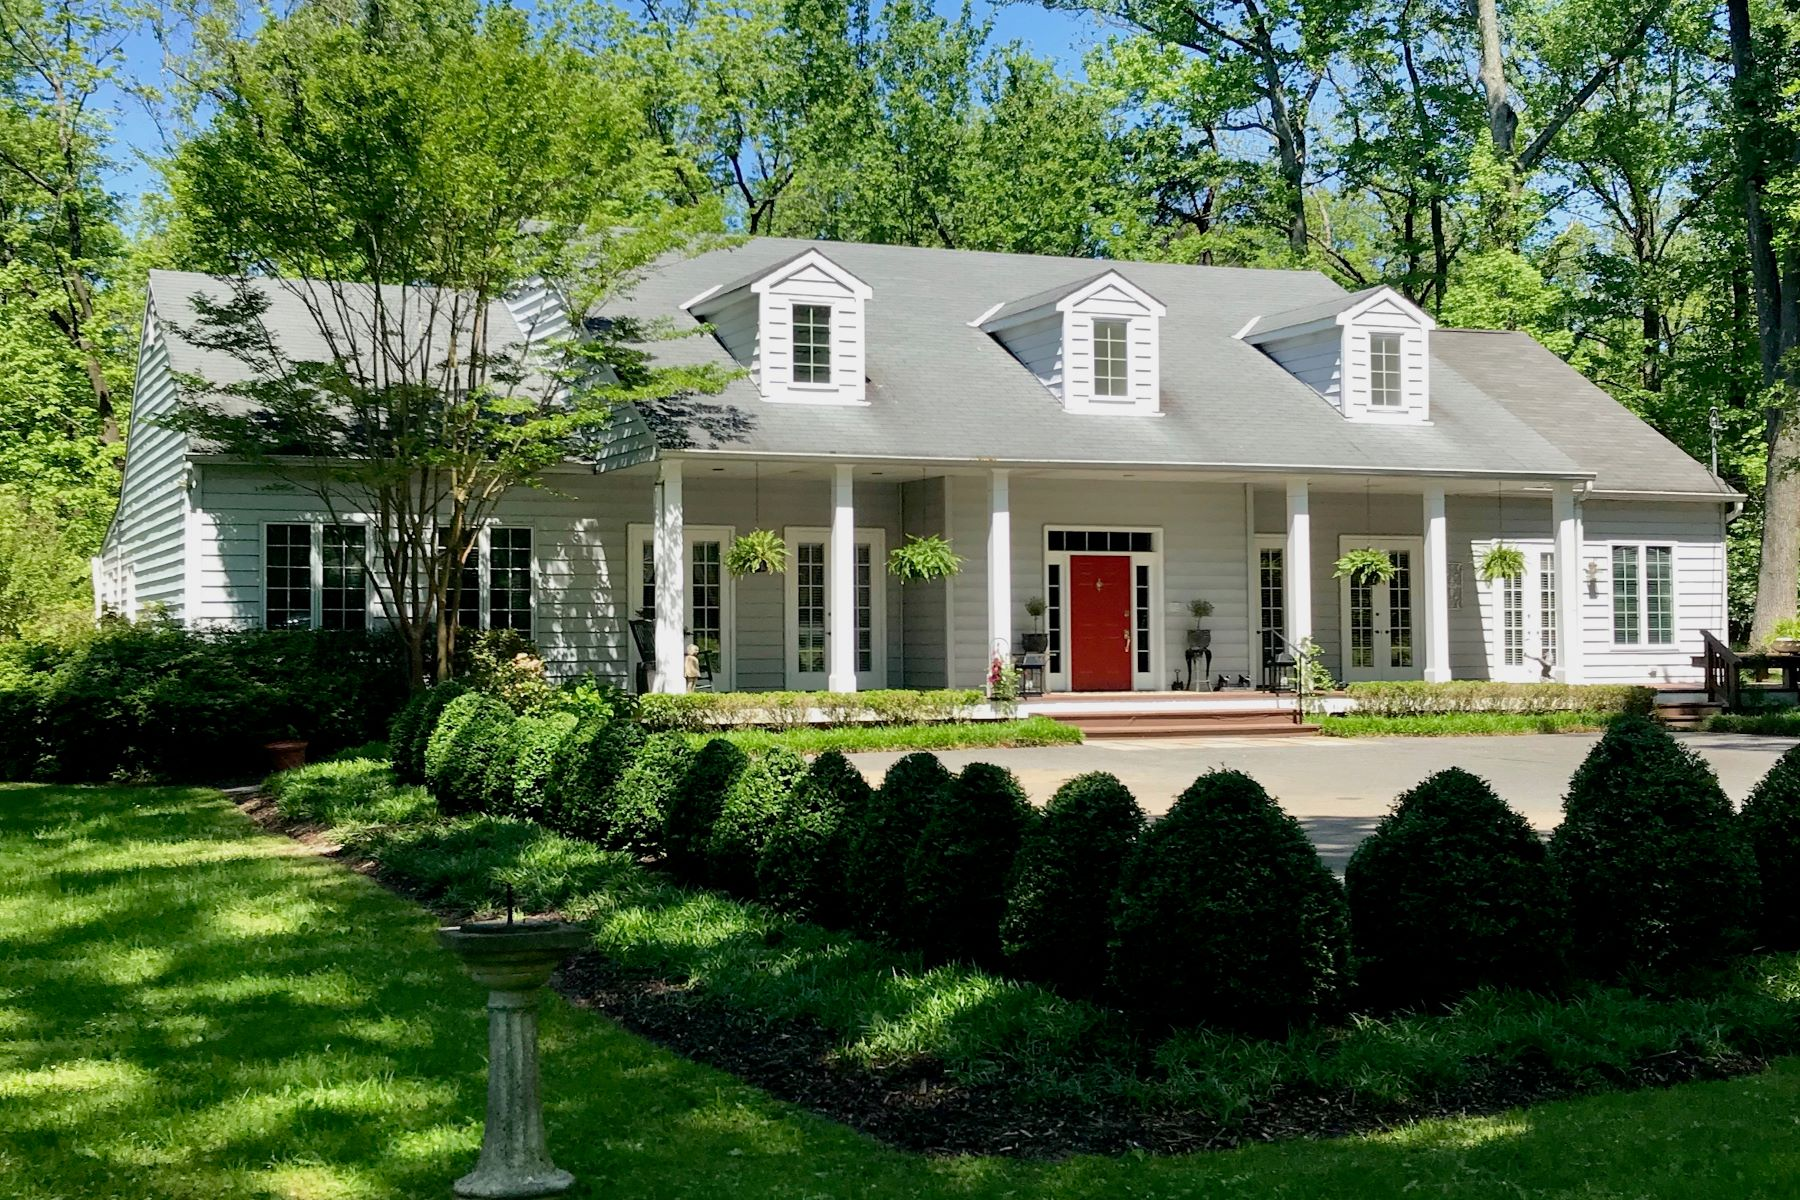 Single Family Homes for Sale at Greenspring Valley 8 Chittenden Lane Owings Mills, Maryland 21117 United States